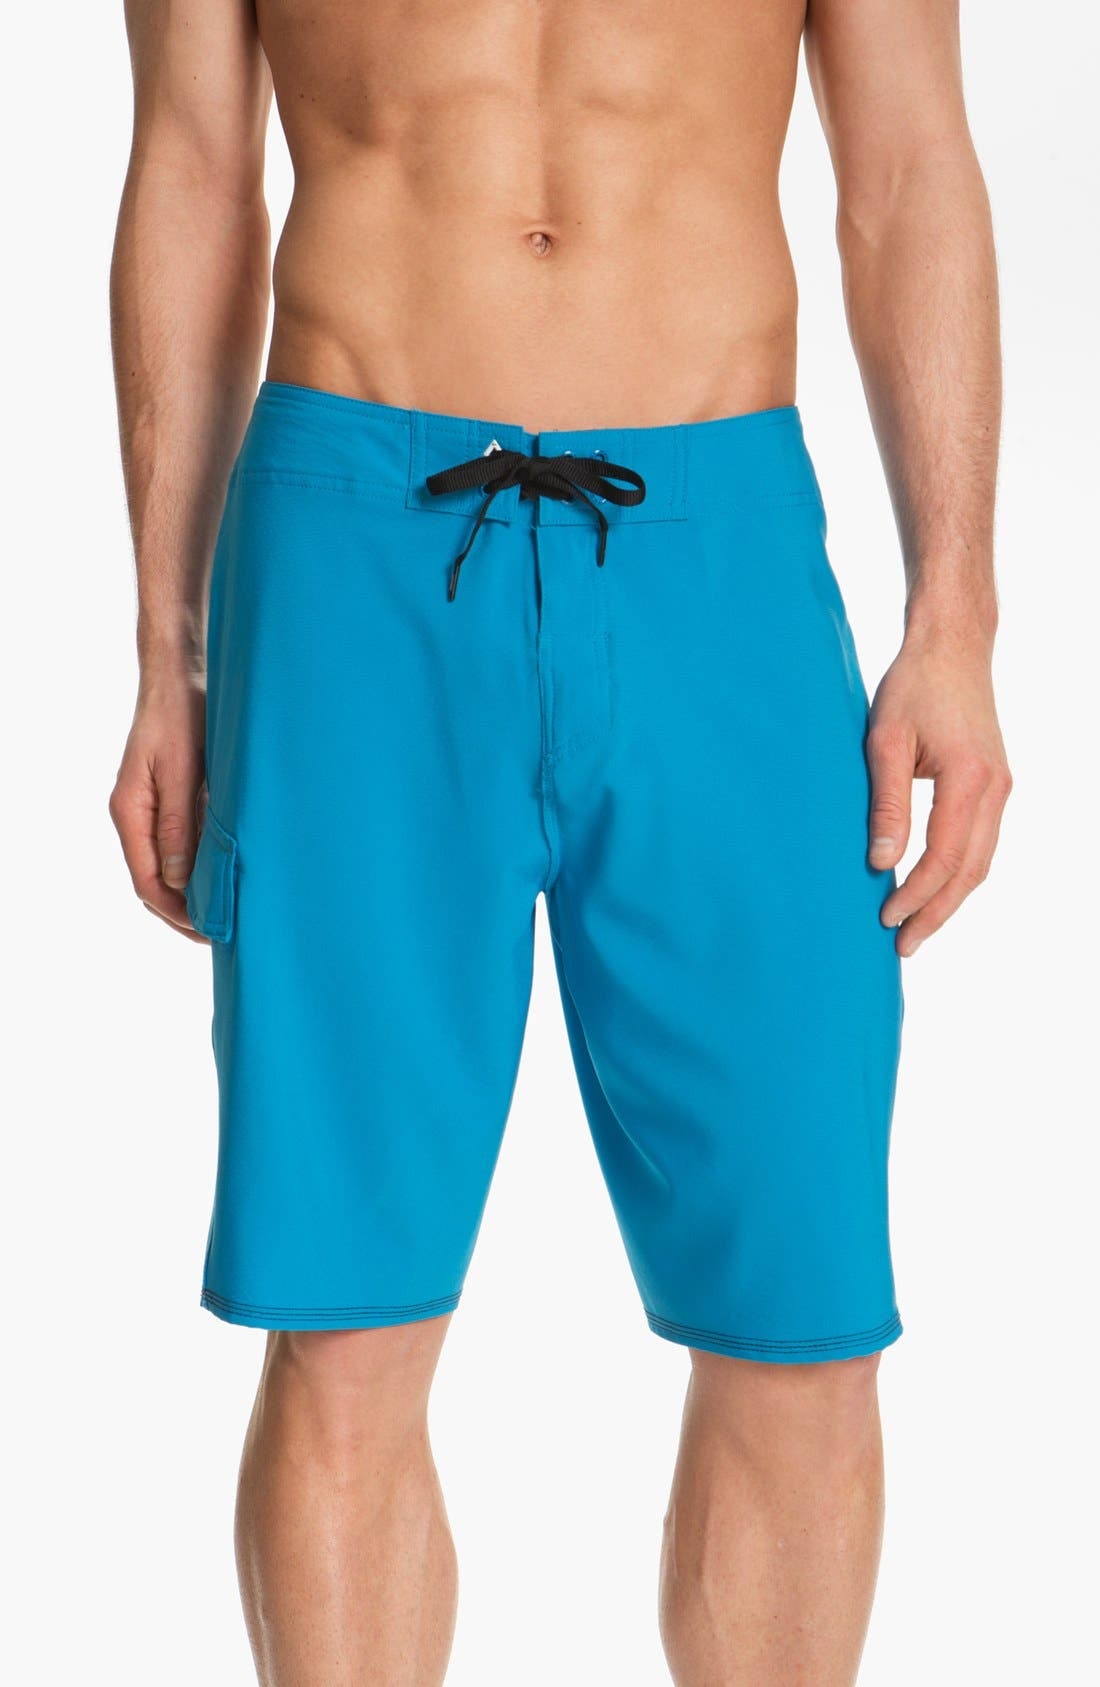 Alternate Image 1 Selected - Quiksilver 'Kaimana Royale' Board Shorts